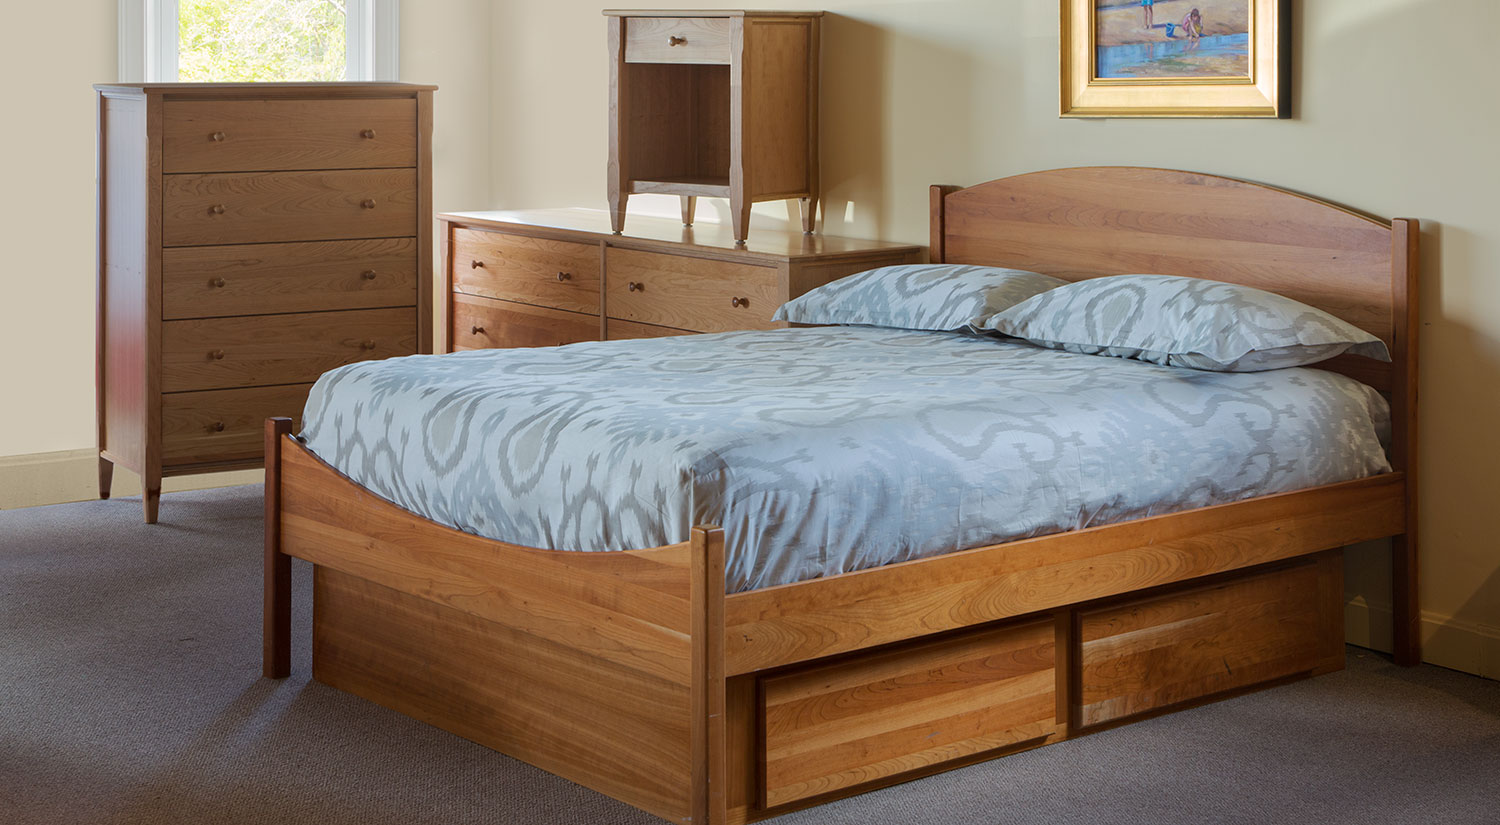 Circle Furniture Moondance Shaker Bed Beds Cambridge